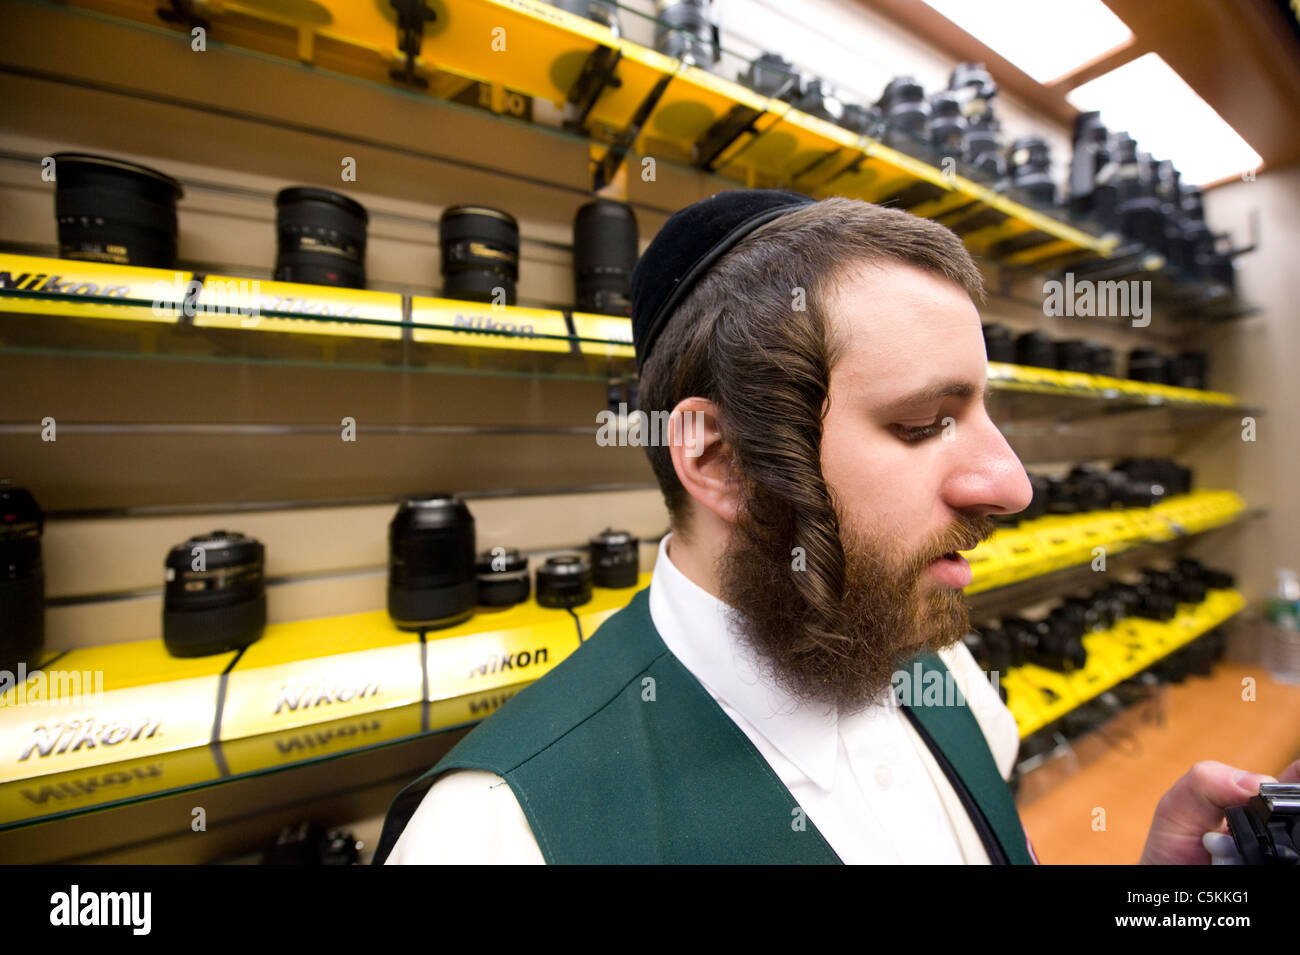 Jewish man in front of a Nikon lens display in a camera store, New York City. © Craig M. Eisenberg - Stock Image